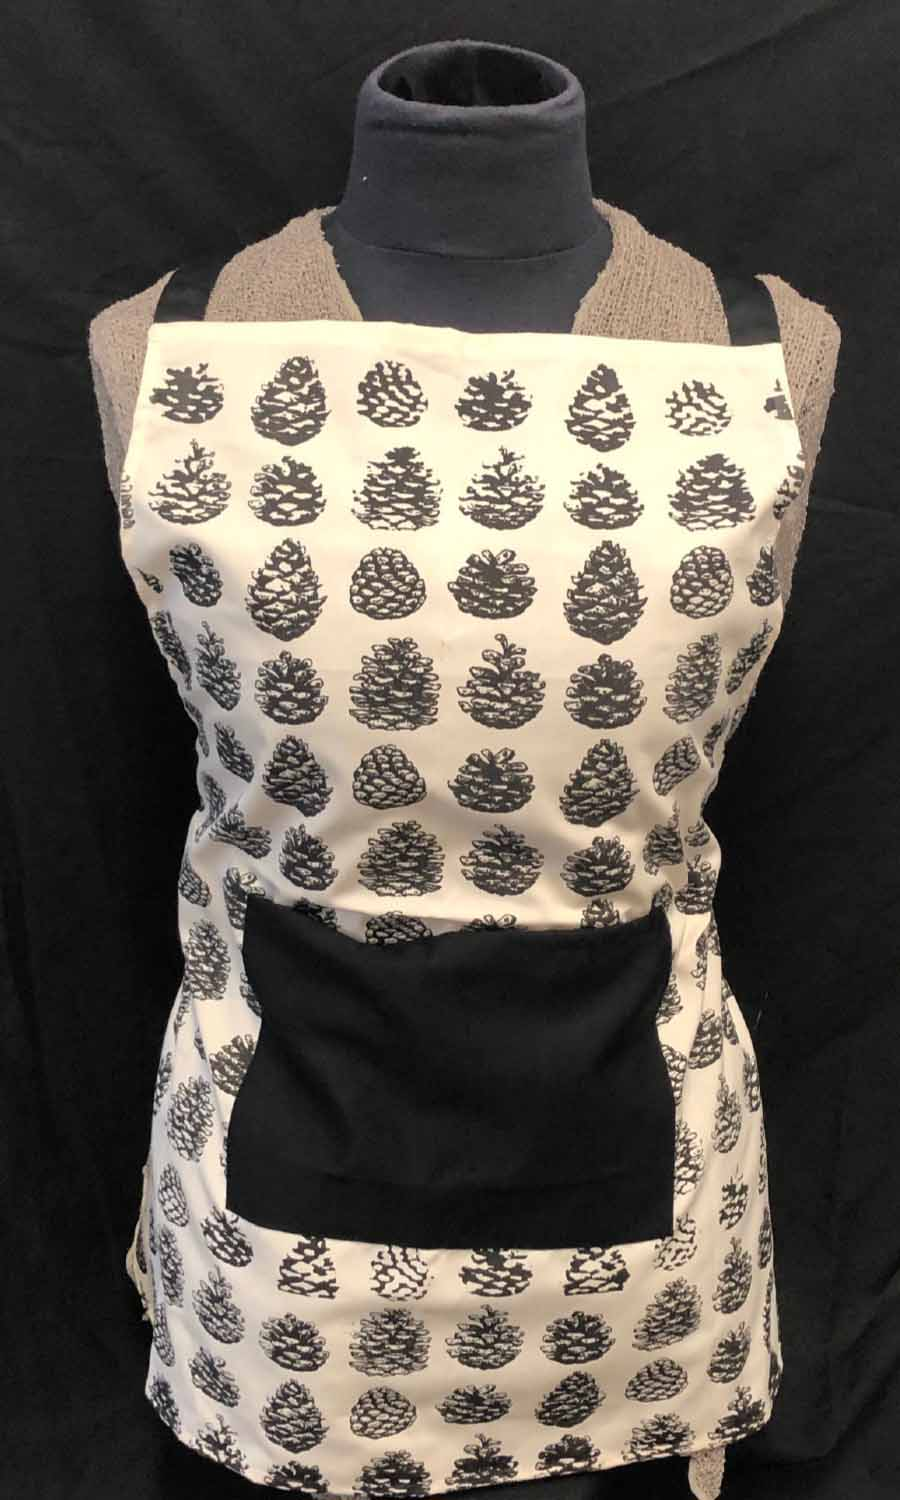 Apron with pinecone